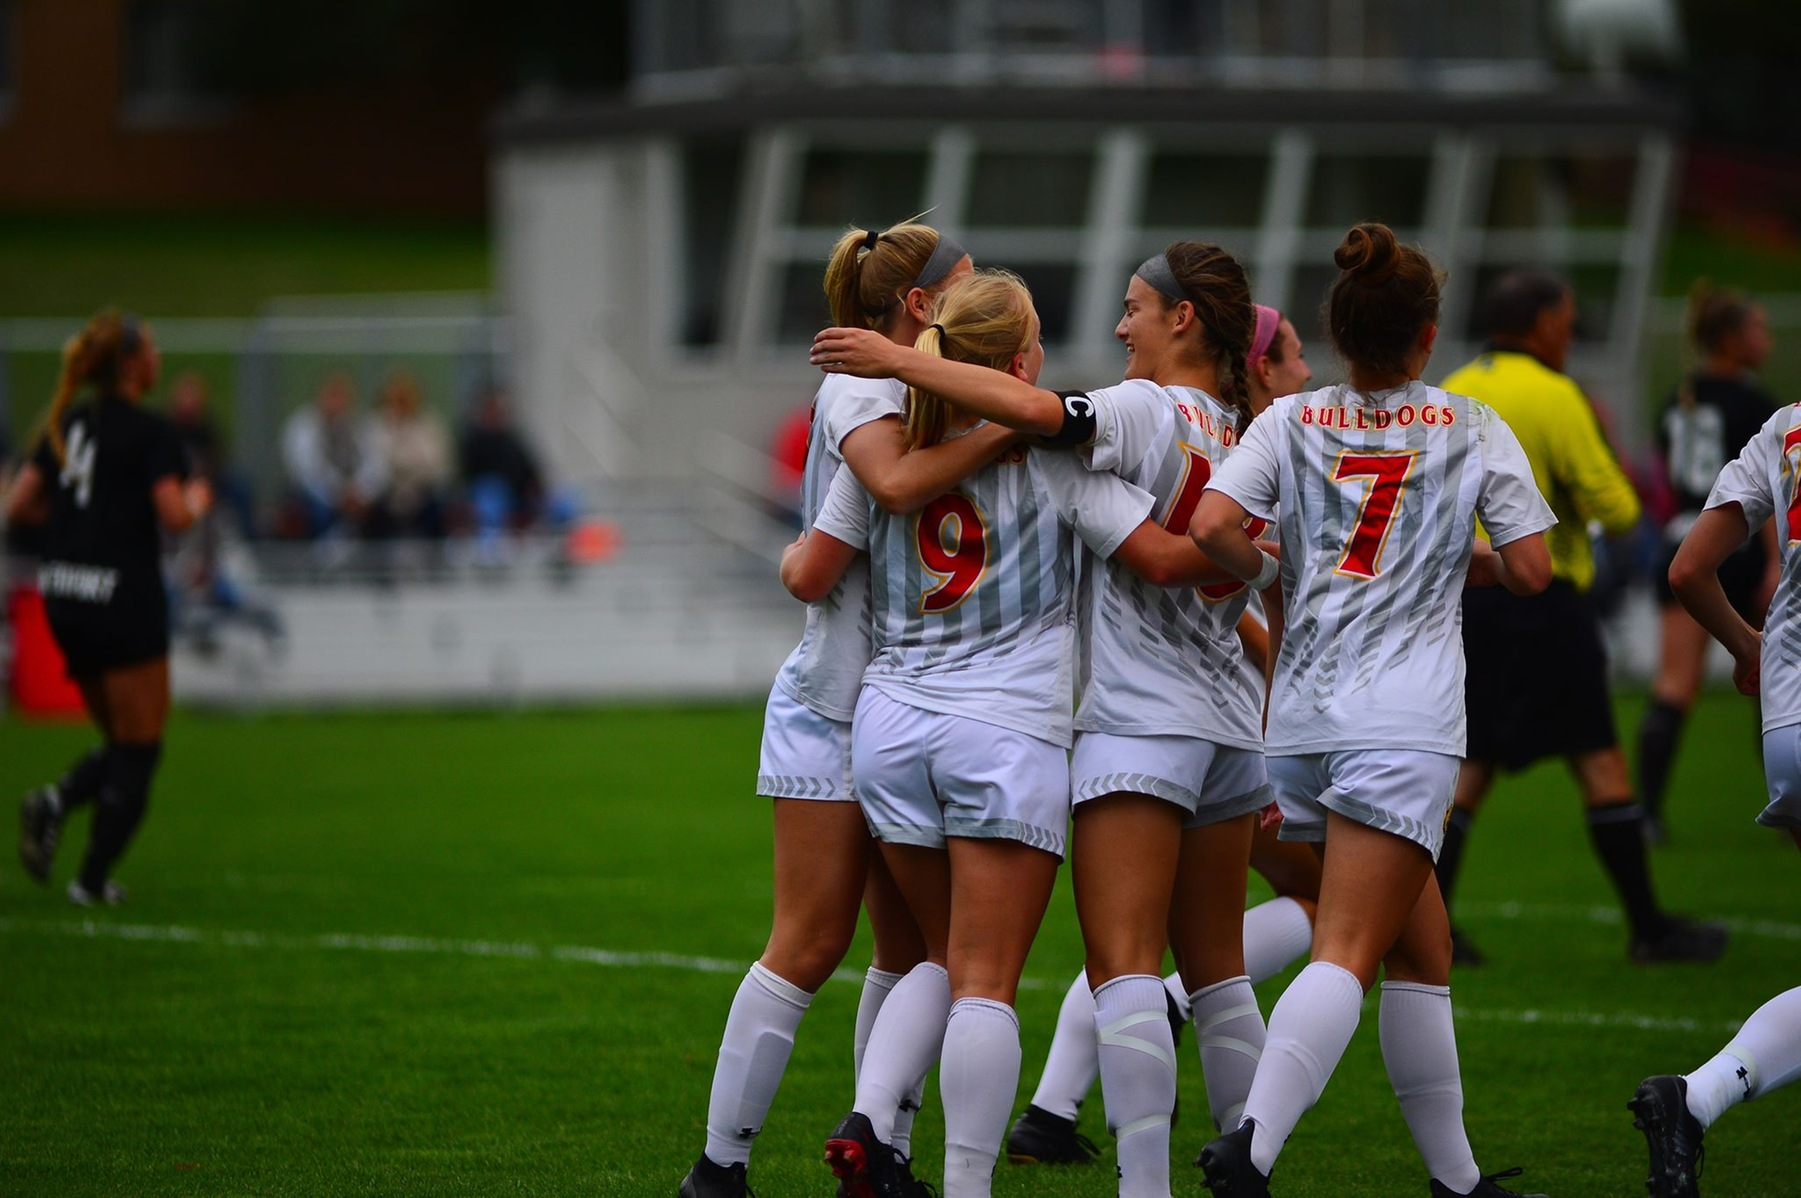 Ferris State Erupts For Six Goals In Win Over Davenport